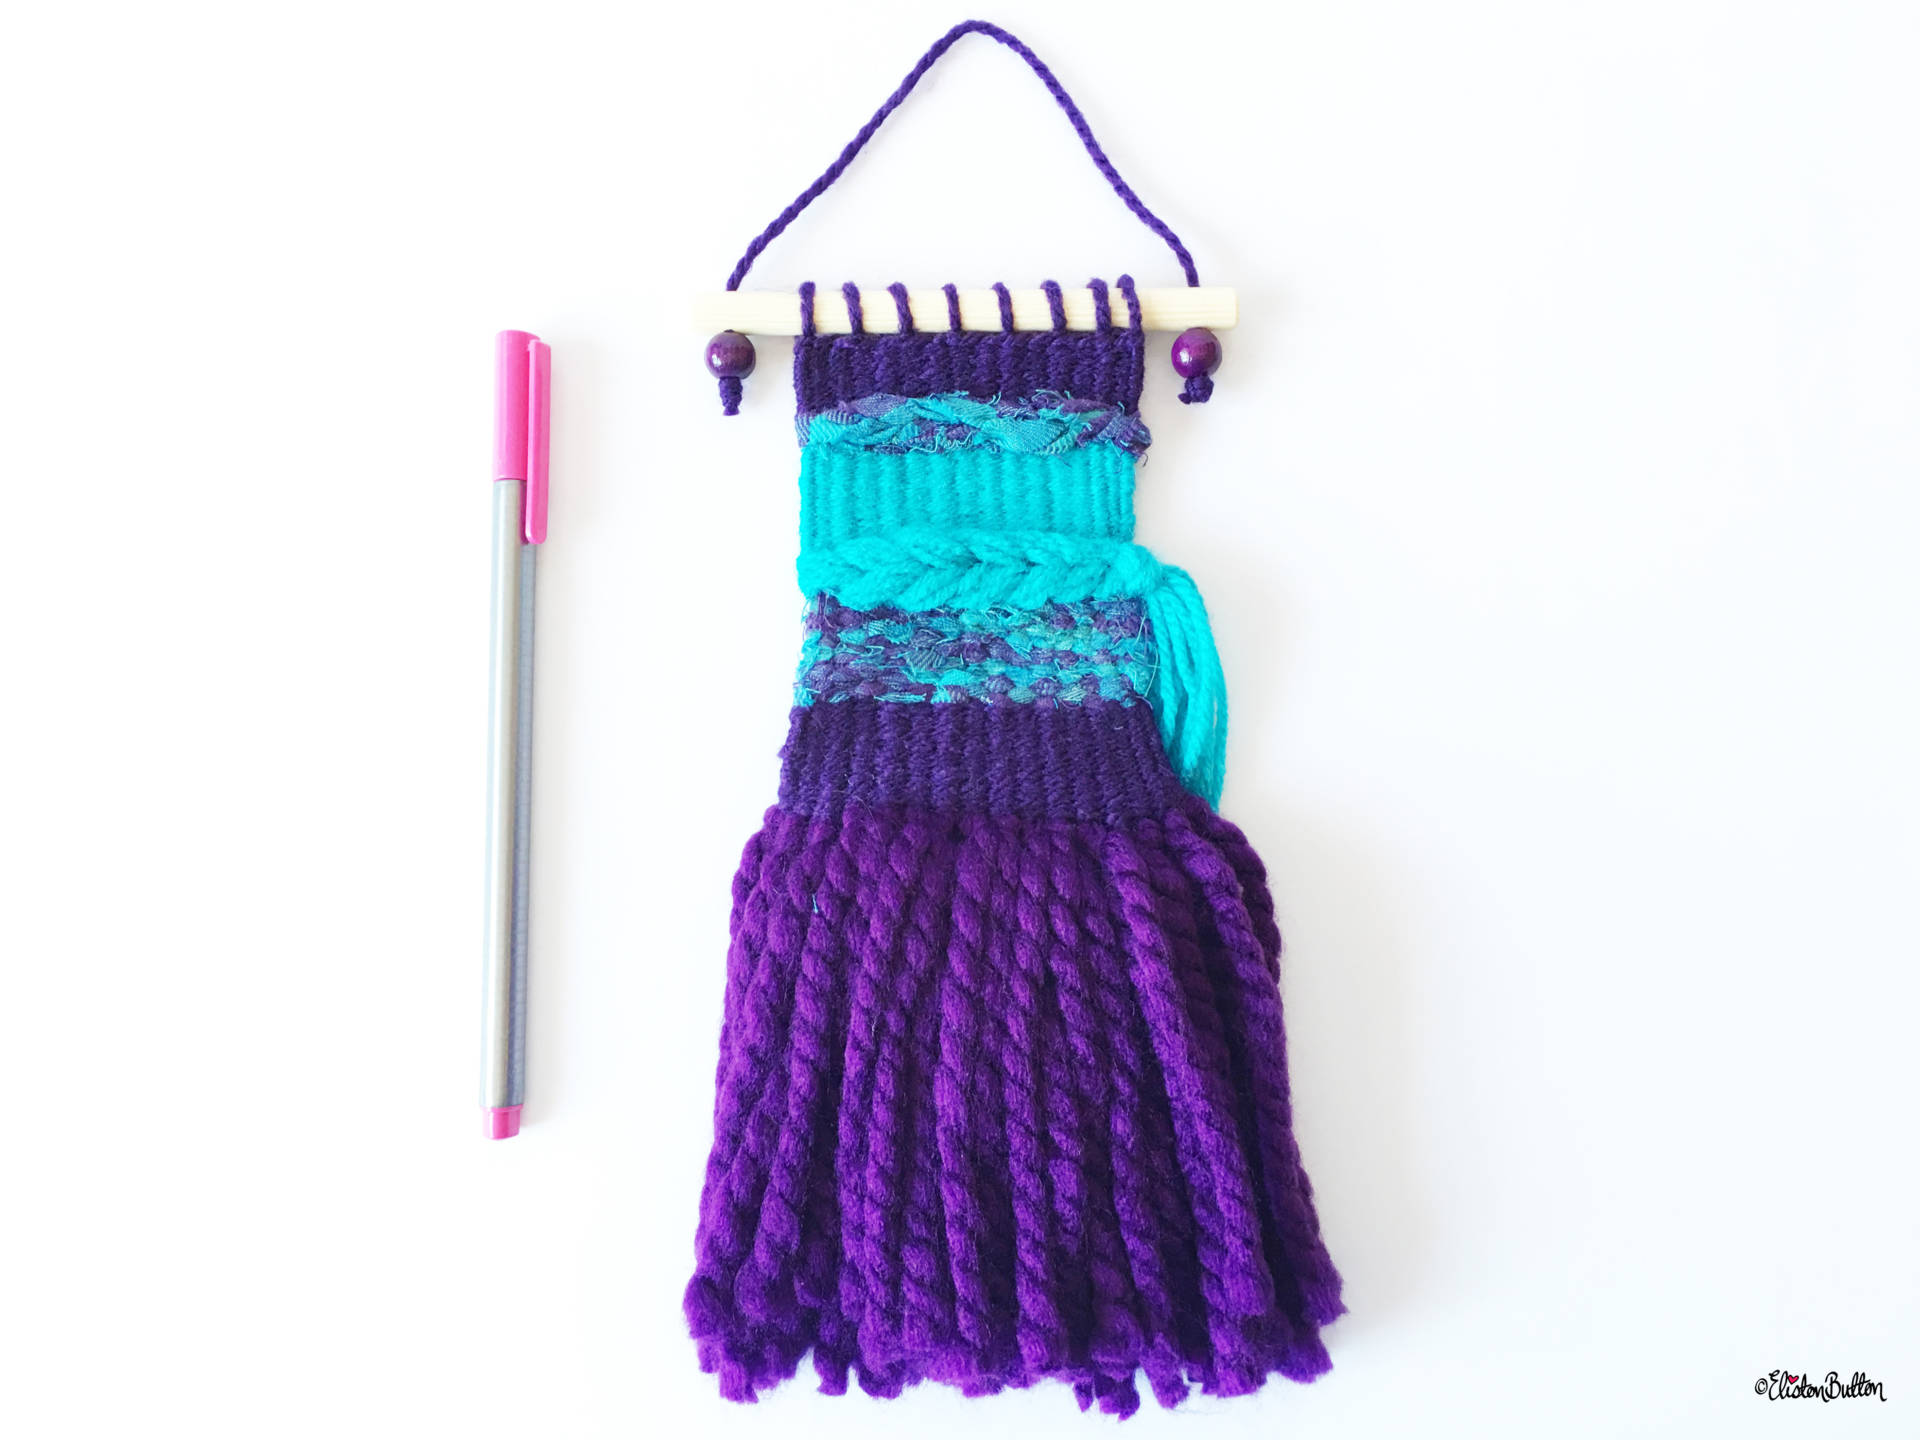 Purple and Turquoise Mini Woven Wall Hanging with Pen for Size Comparison - Create 30 - No.2 - Mini Woven Wall Hangings at www.elistonbutton.com - Eliston Button - That Crafty Kid – Art, Design, Craft & Adventure.